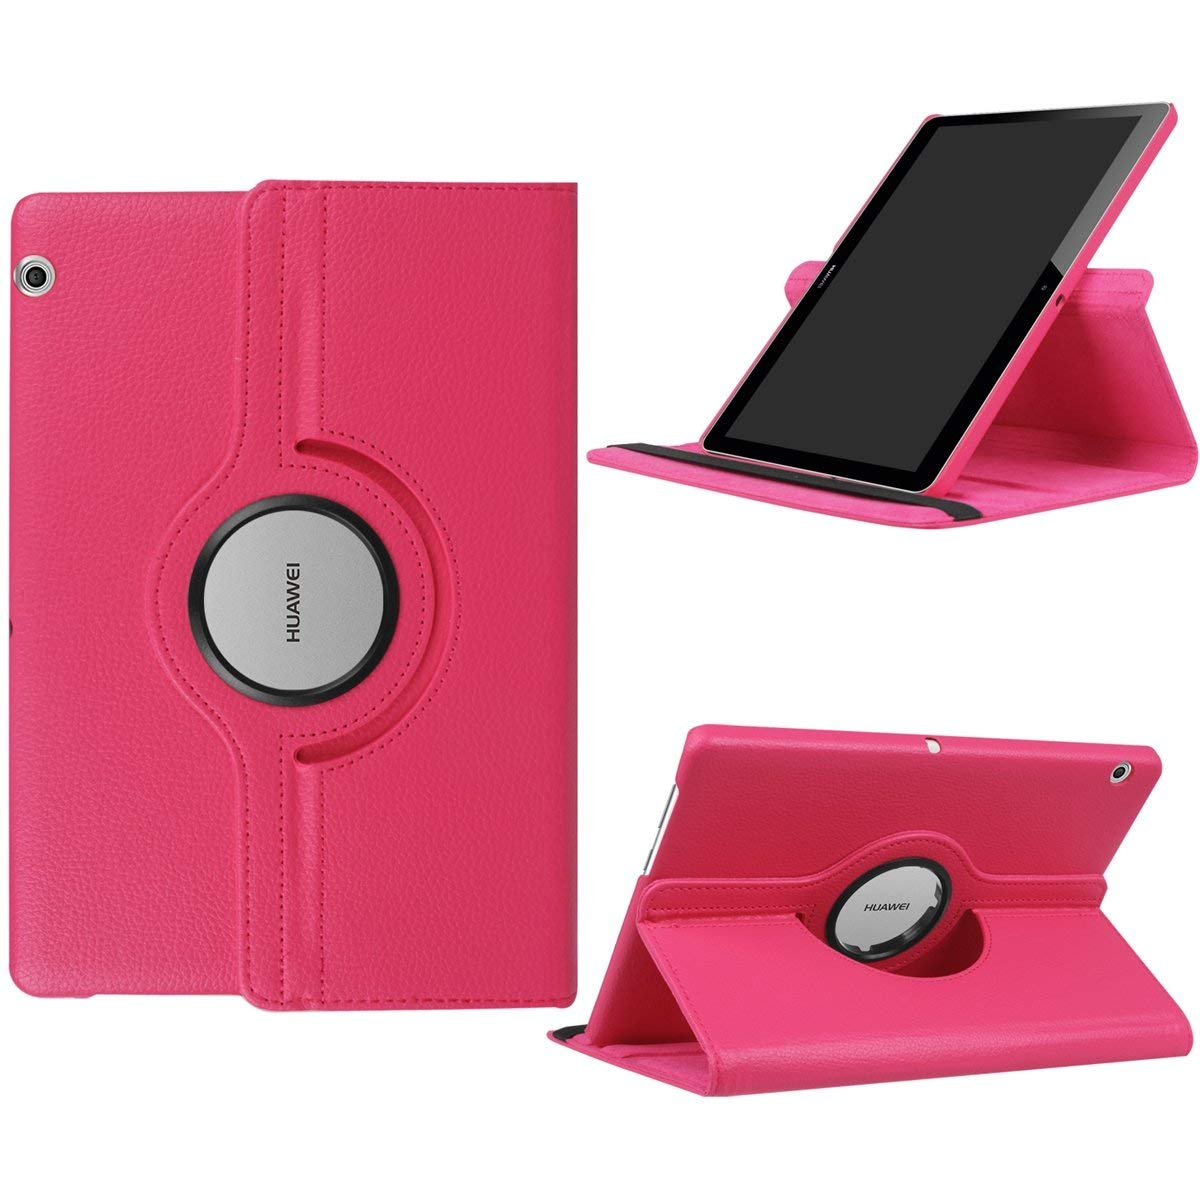 360 Degree Rotating PU Leather Tablet Cover Case For Huawei Mediapad T3 10 9.6 Inch AGS-L09 AGS-L03 AGS-W09 Sleep Awake Funda